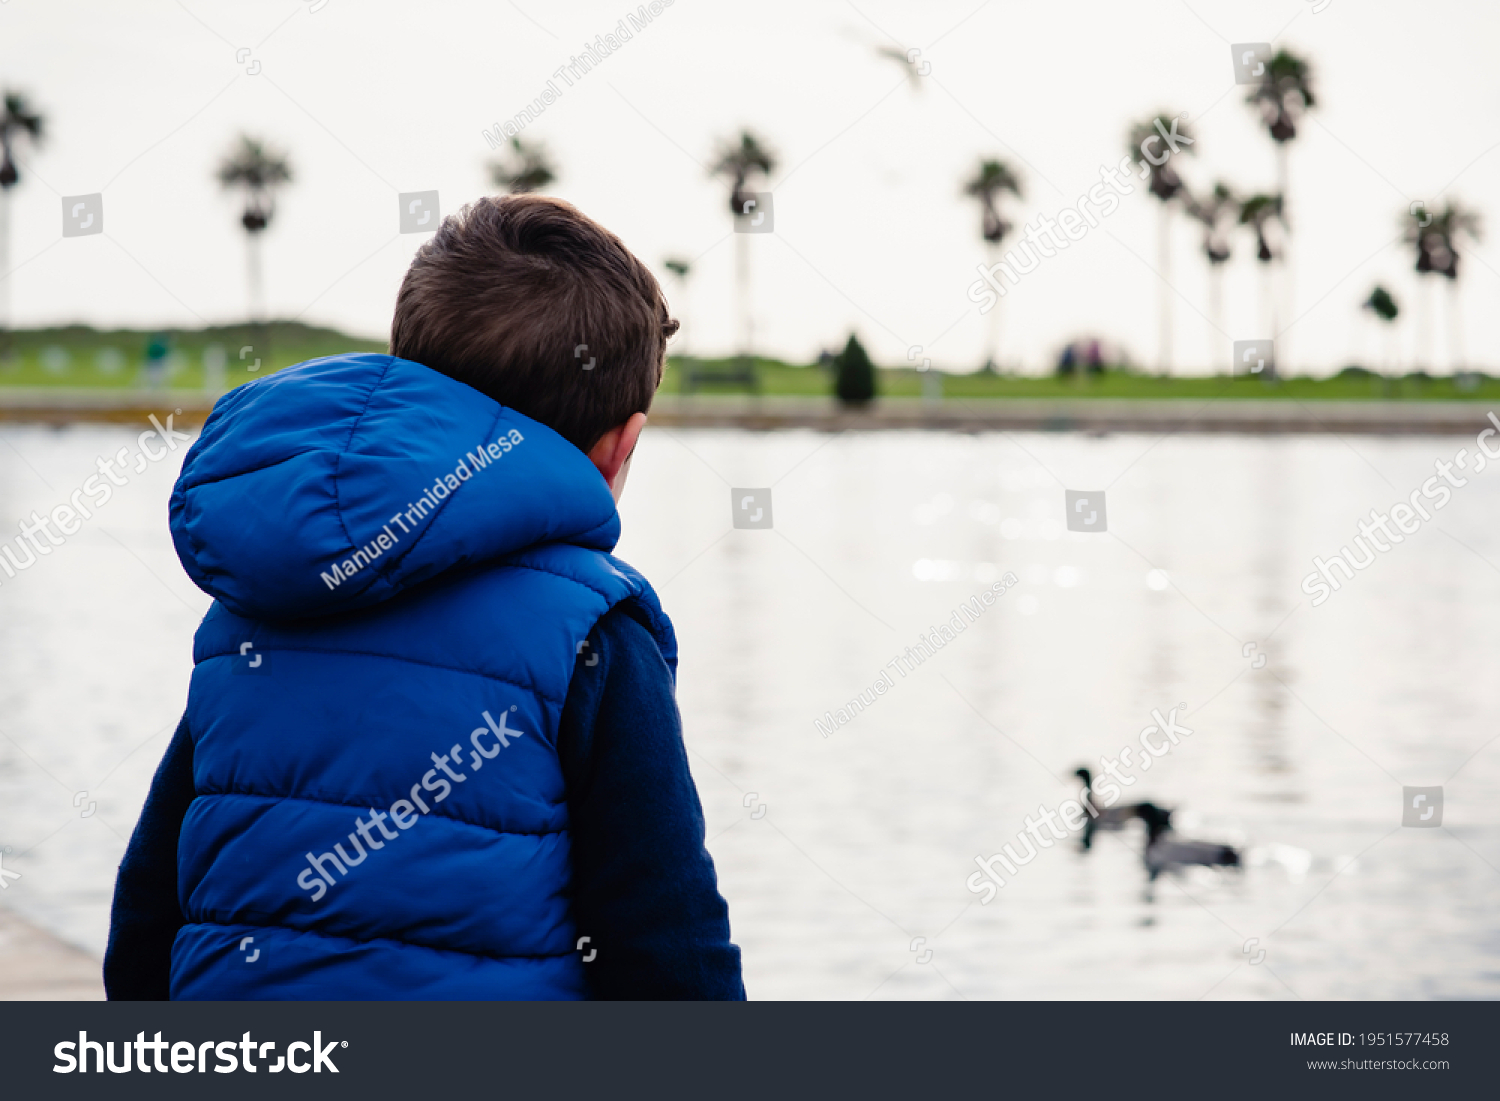 stock-photo-boy-on-his-back-watch-the-du